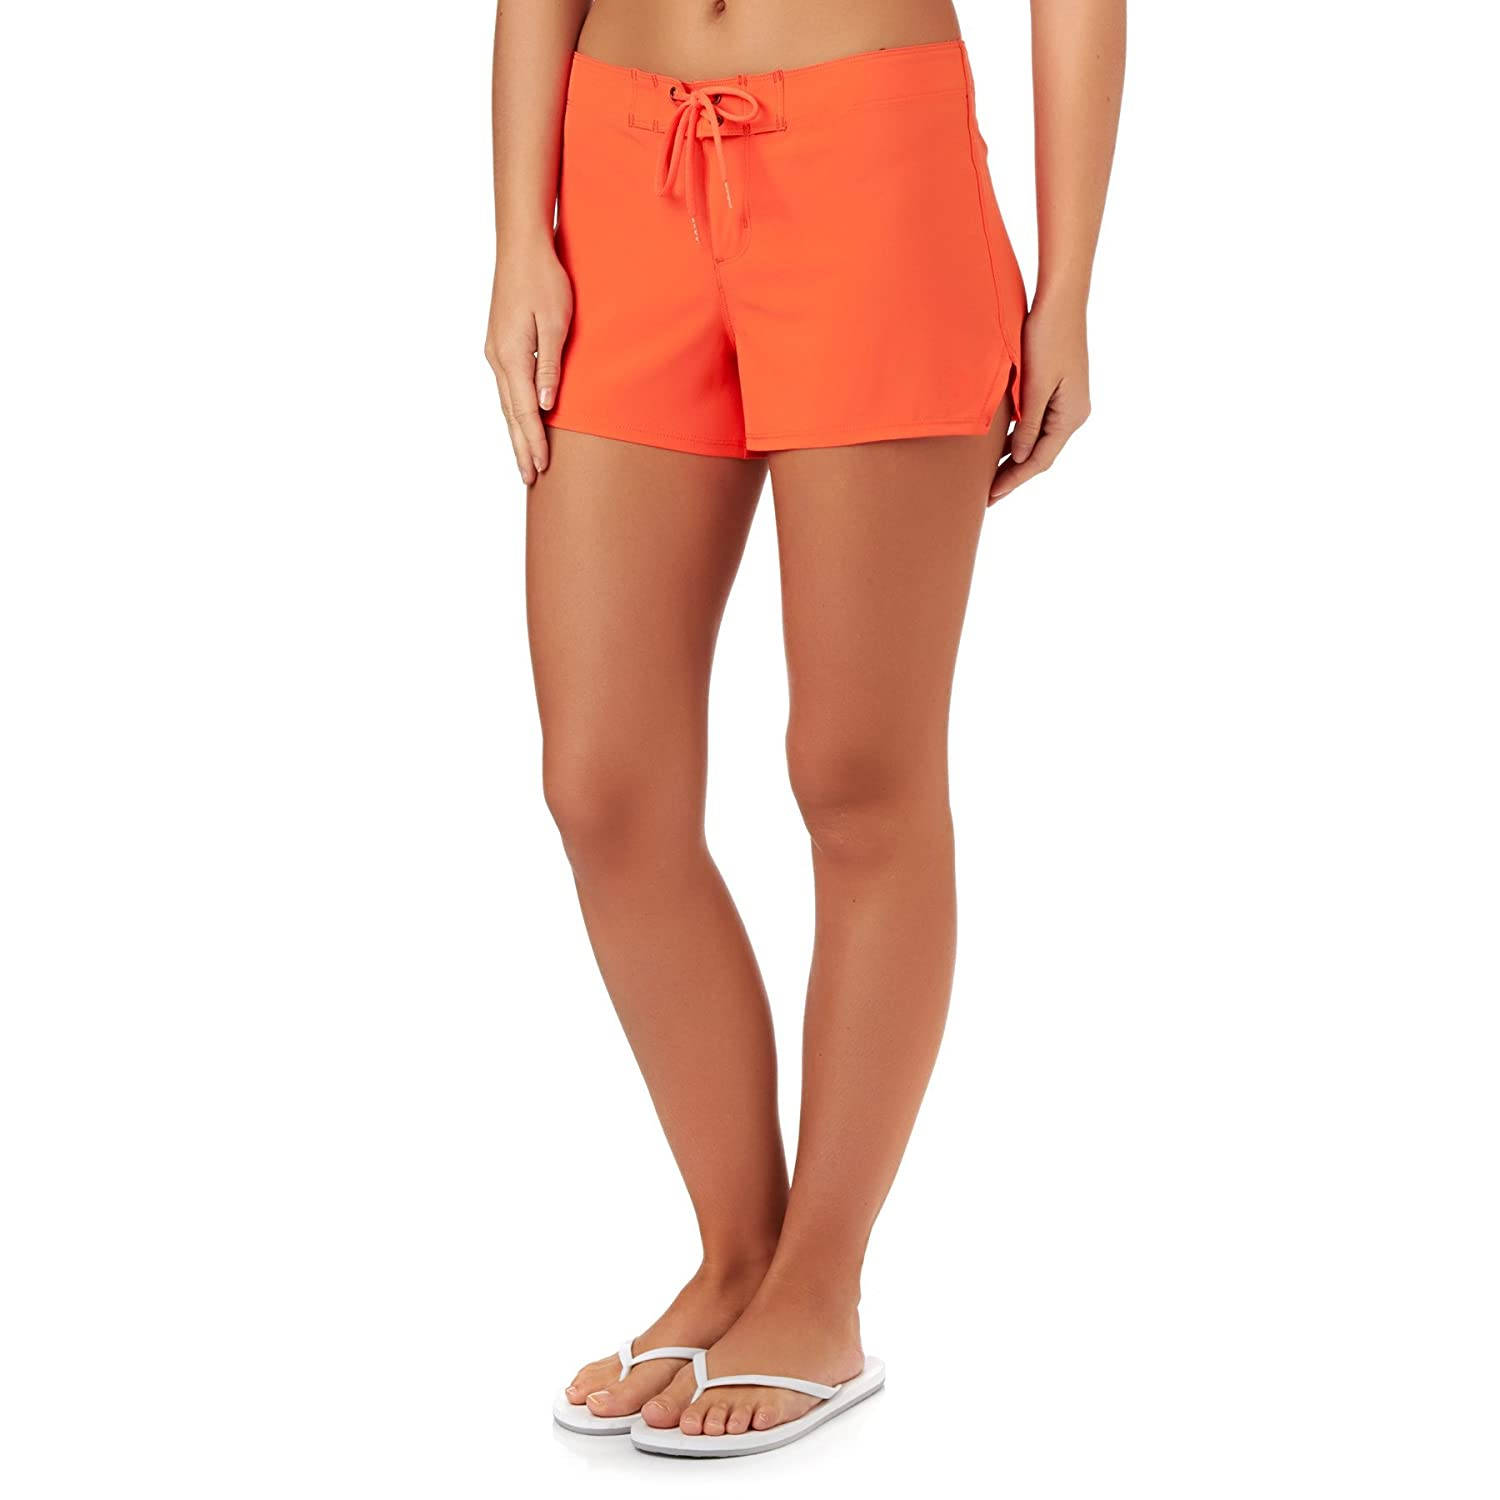 Roxy Board Shorts - Roxy To Dye For Board Shorts - Electric Apricot